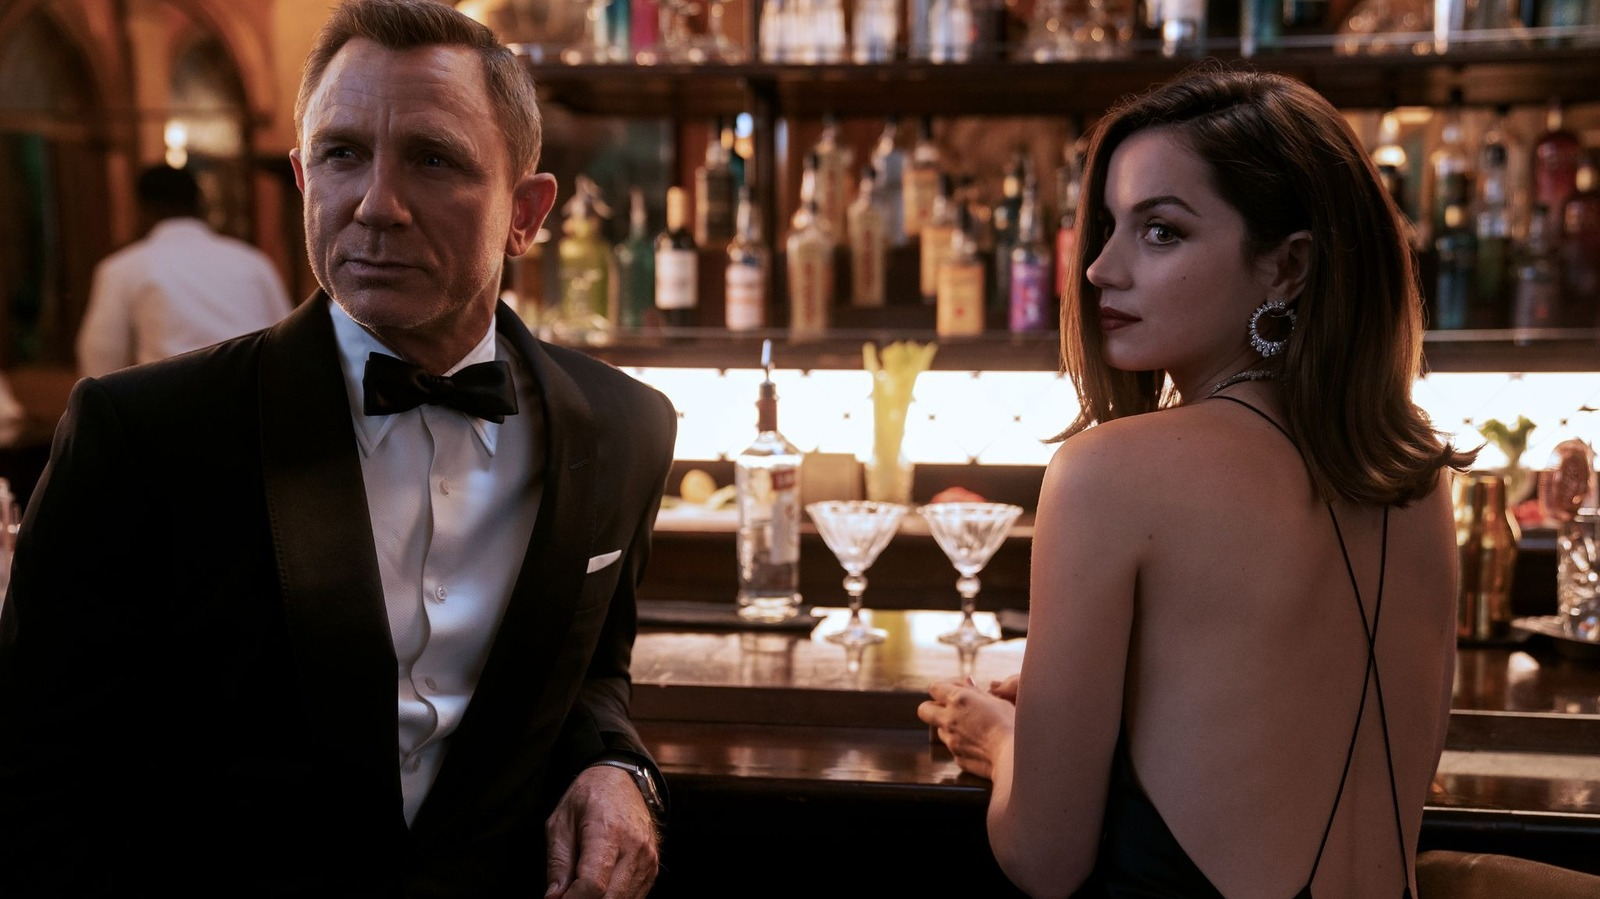 Daniel Craig On Female Bond: 'There Should Simply Be Better Parts For Women'